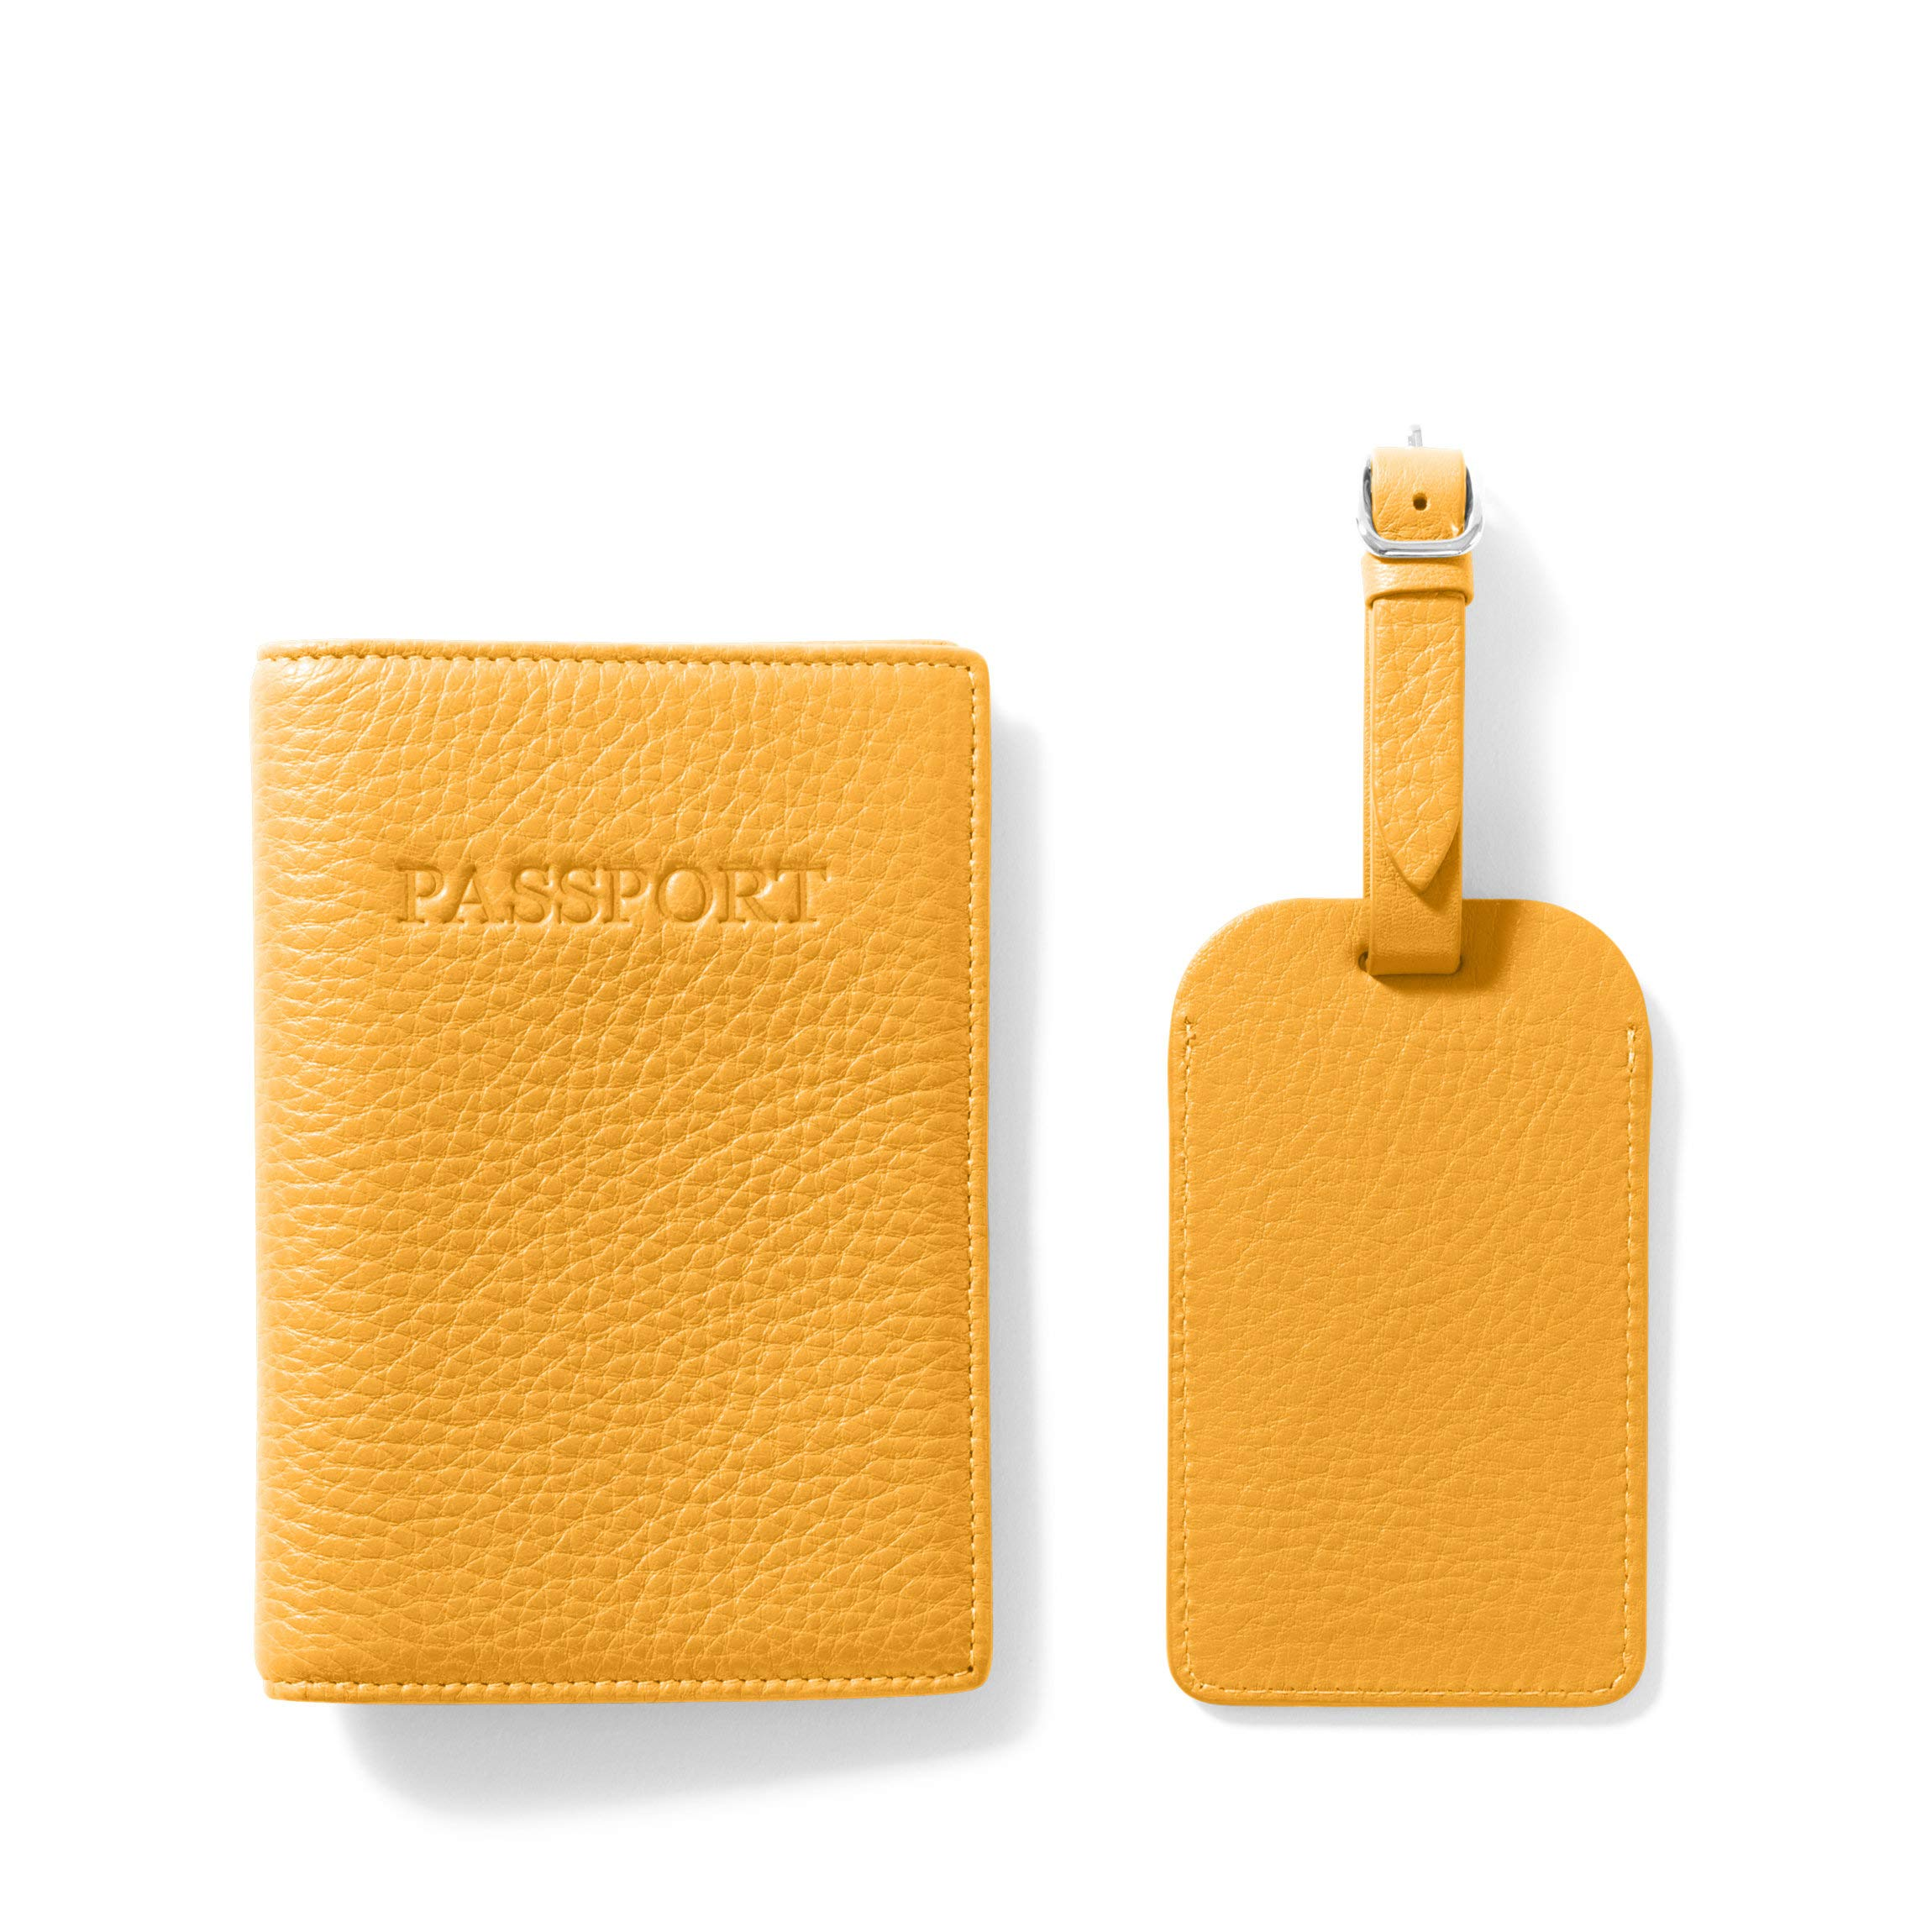 Leatherology Turmeric Passport Cover + Luggage Tag by Leatherology